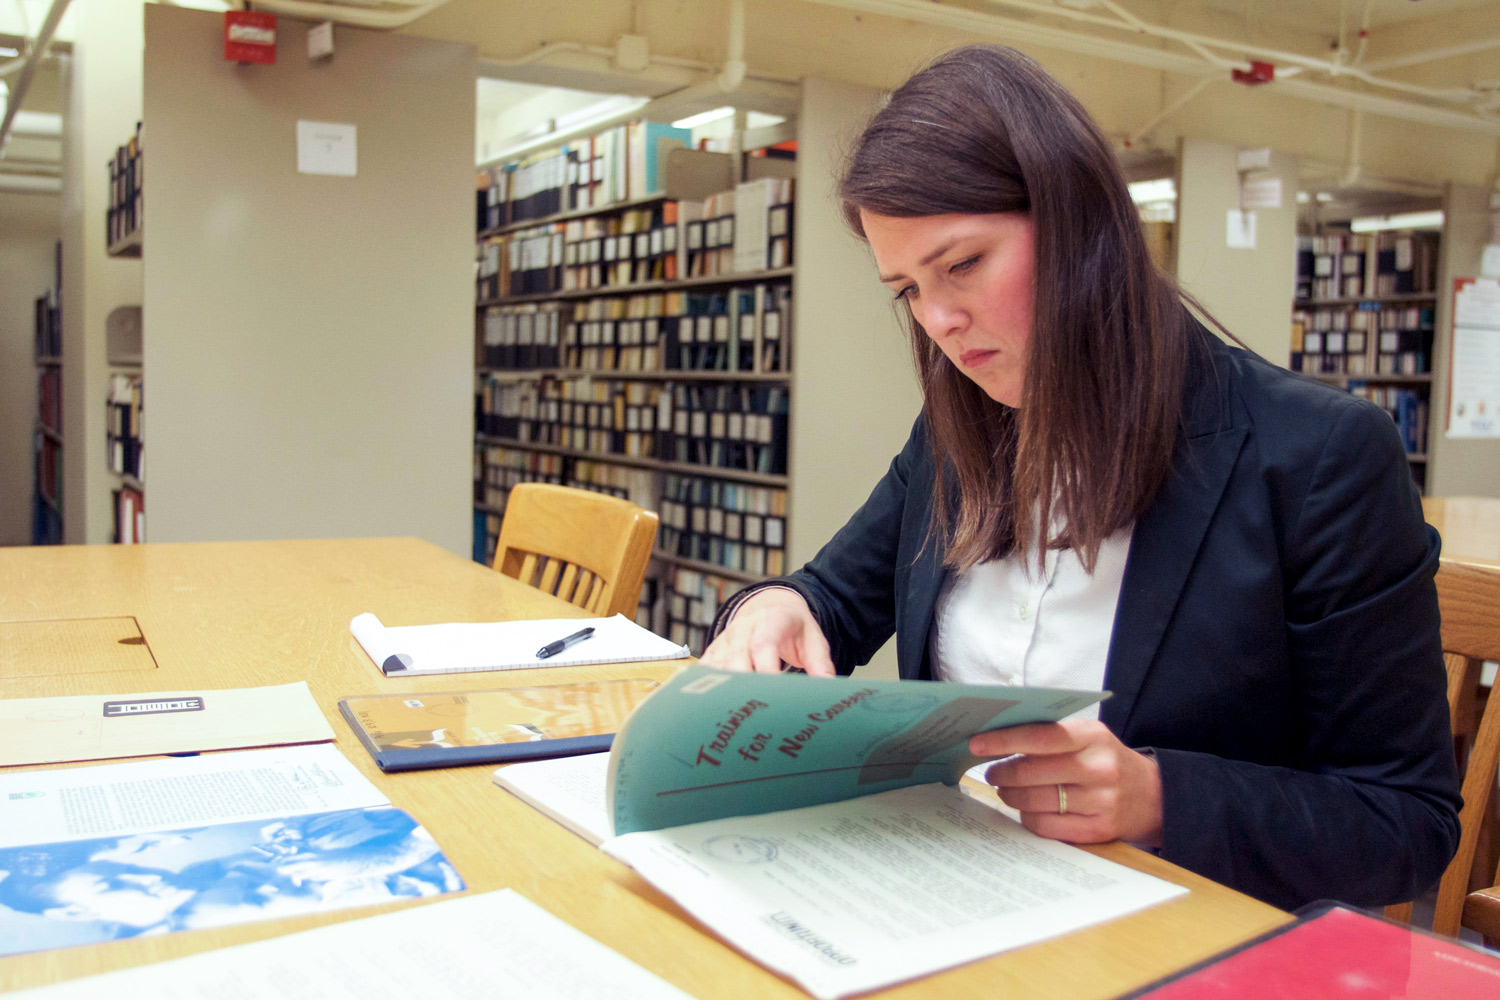 Claire Dunning in the library examining old government training manual